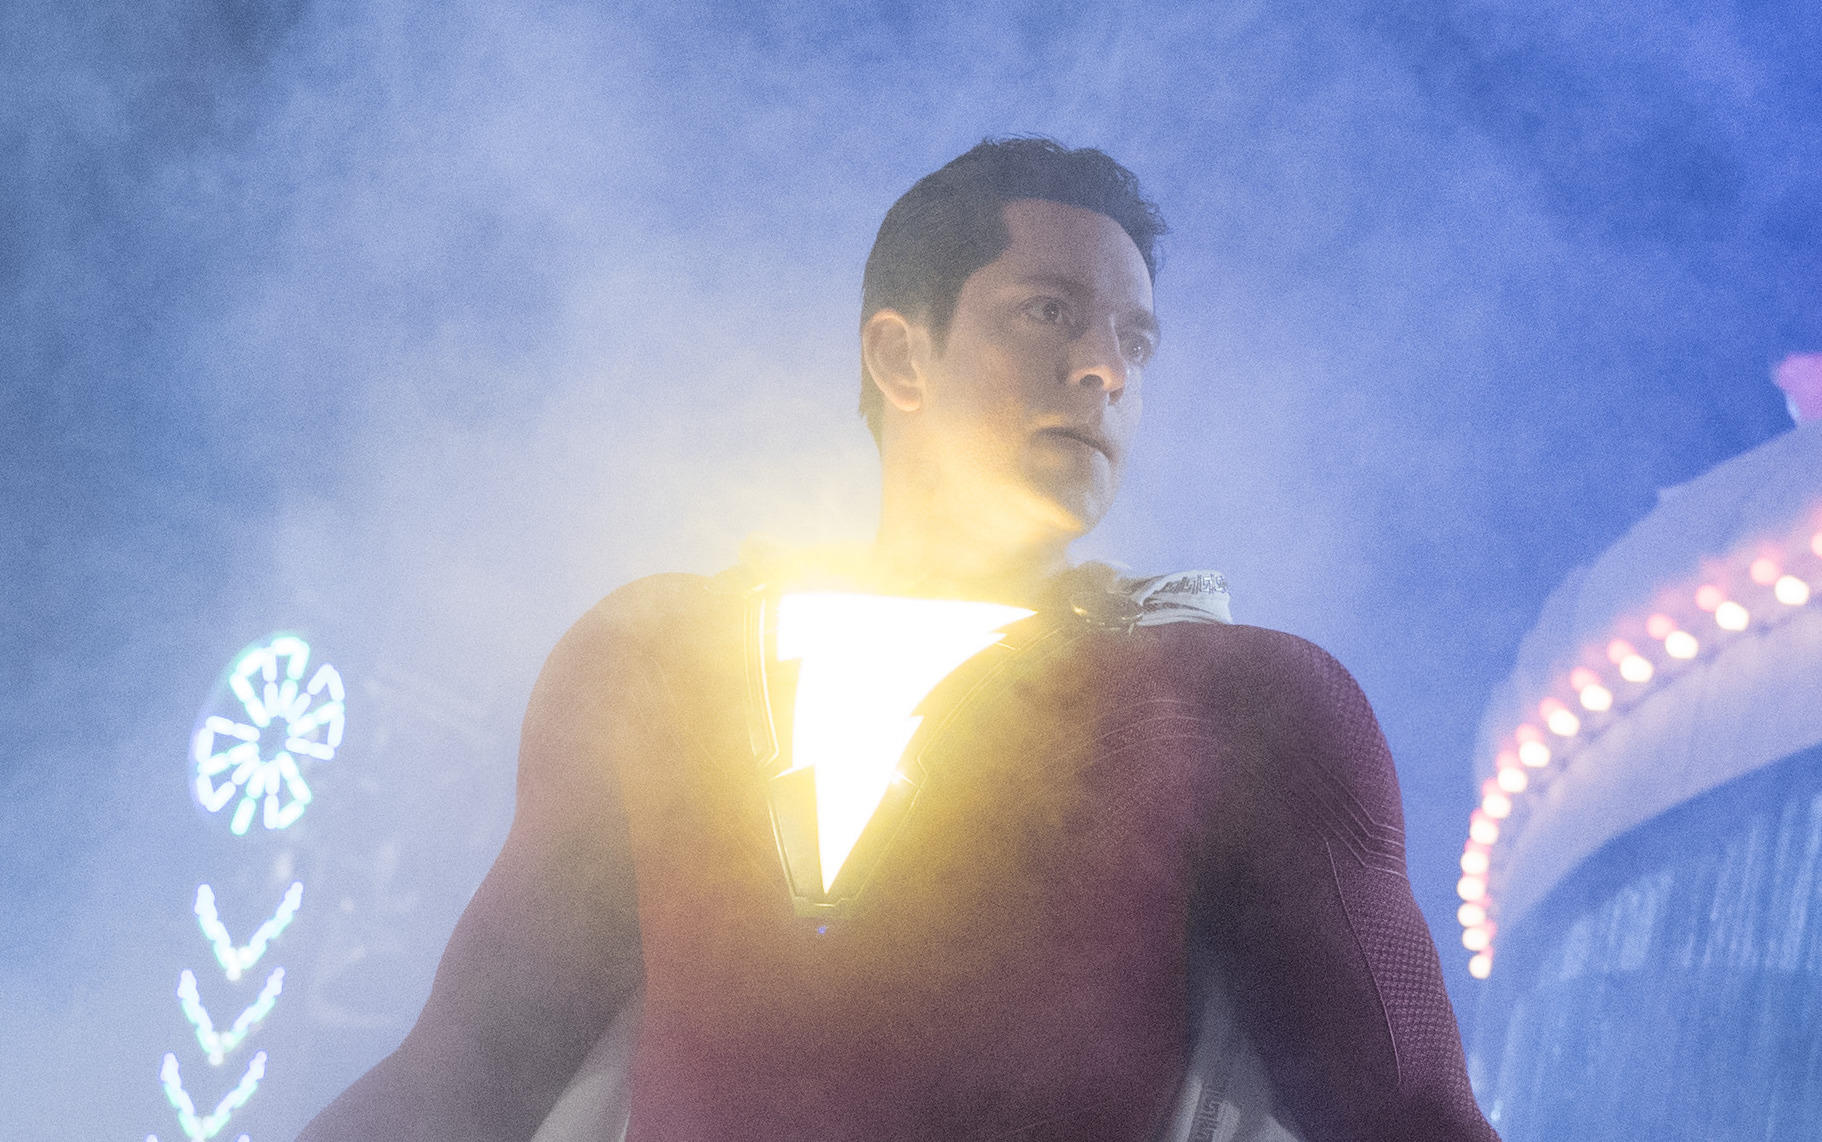 shazam-dc-rev-1-shzm-11351r-high-res-jpeg-promo-crop